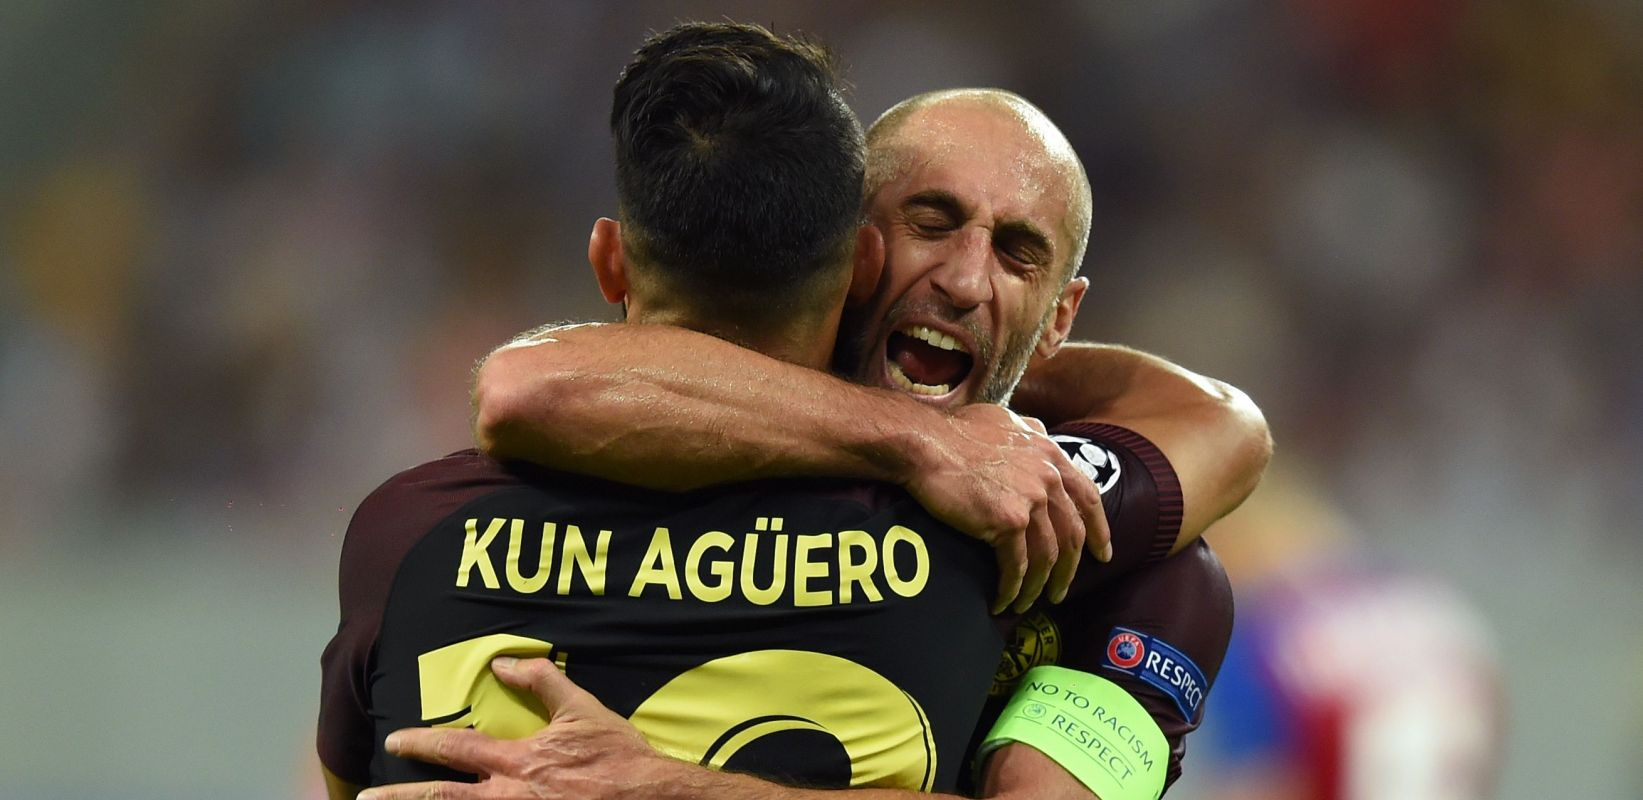 Legends Both - Zaba and Sergio are chasing a hat-trick of Premier League titles under Pep Guardiola's leadership.